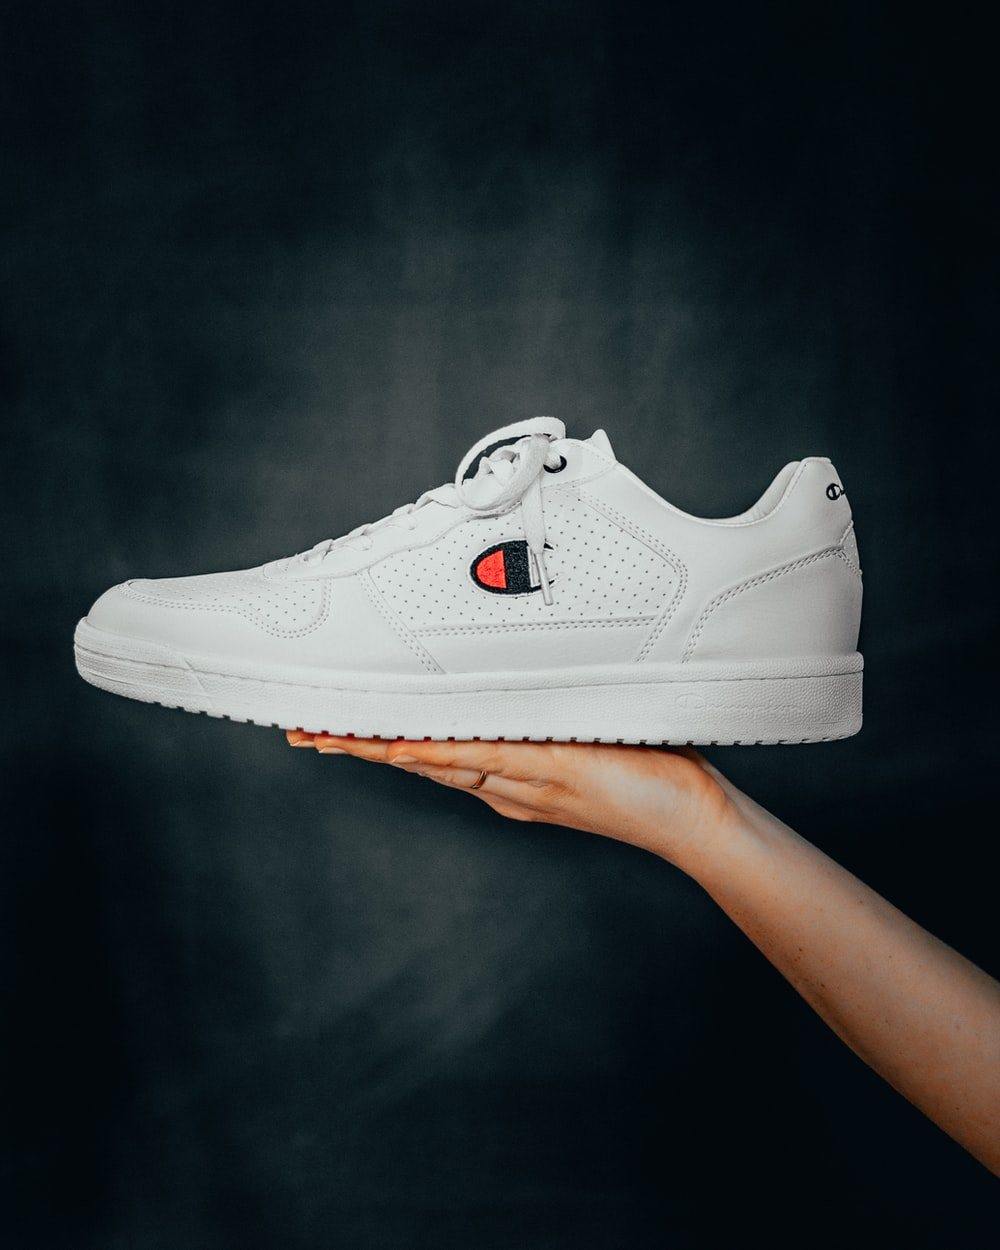 unpaired white Champion low-top sneaker